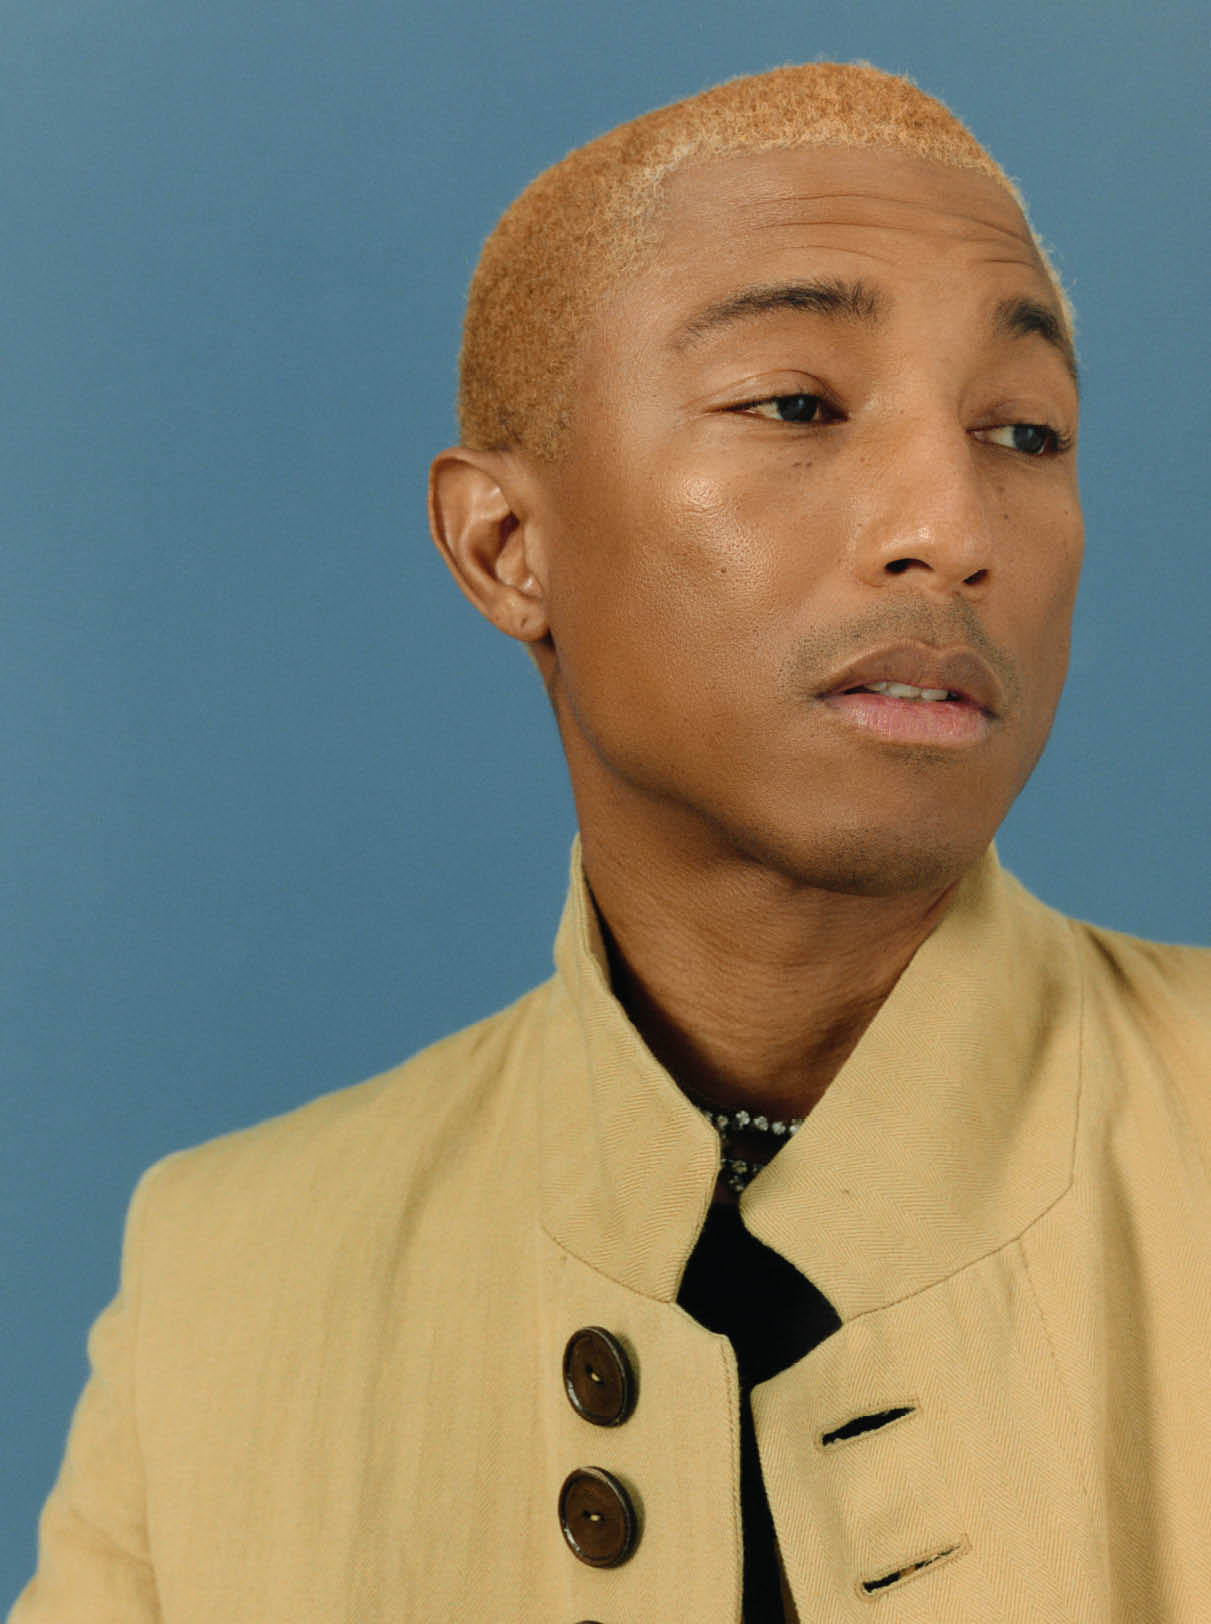 Pharrell Williams (Credit: Yann Faucher)